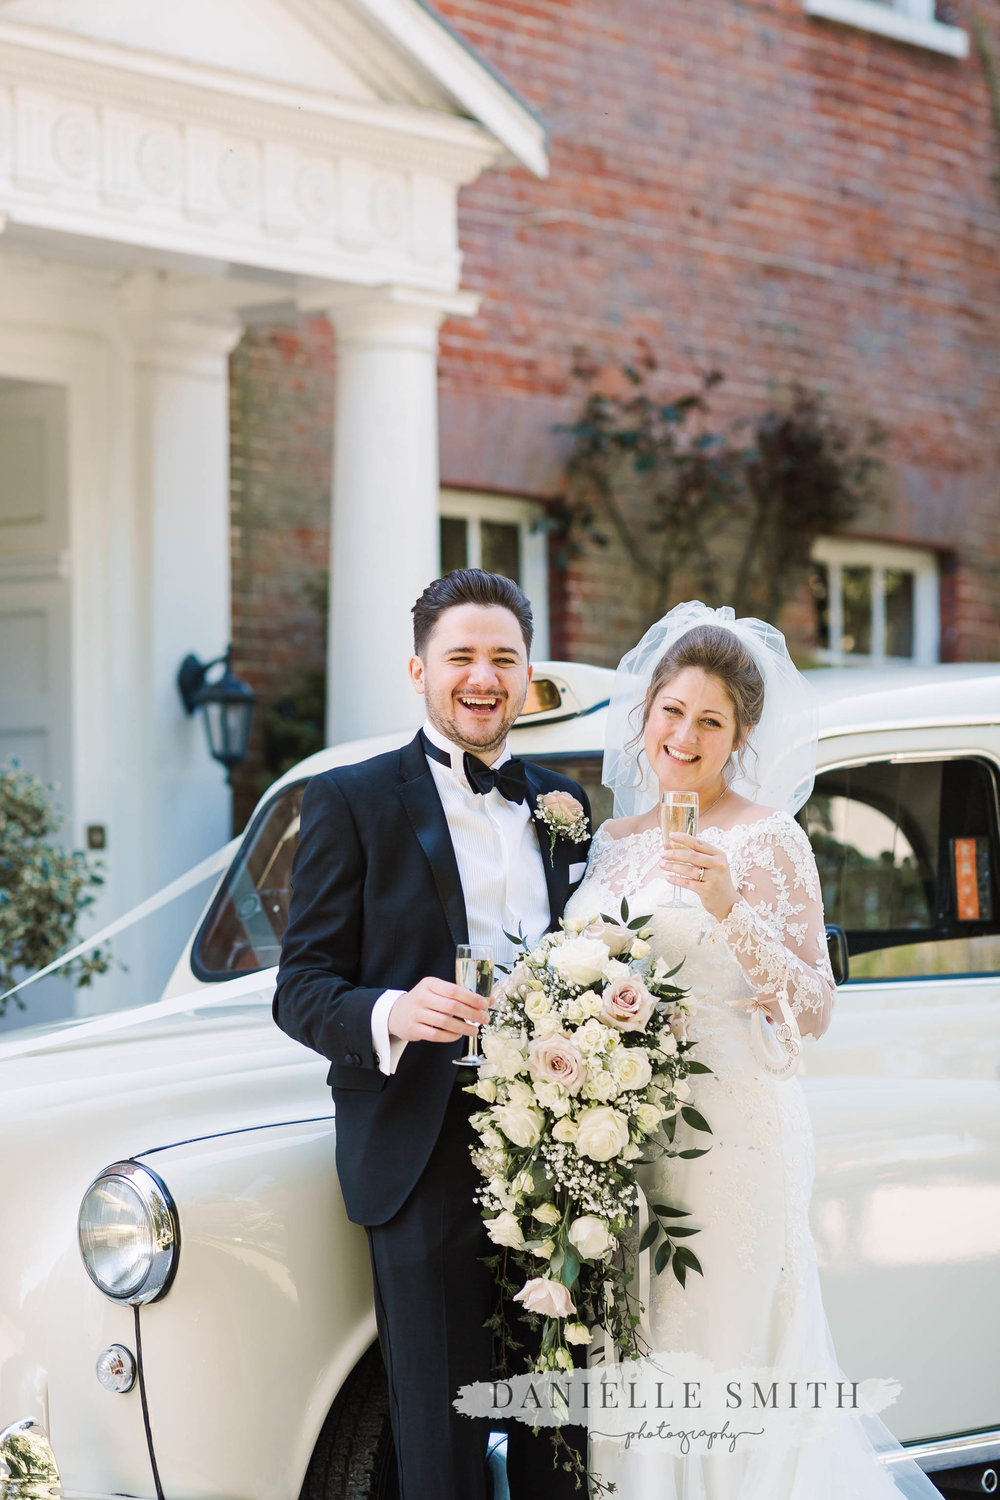 bride and groom with champagne and white taxi - elegant and romantic black tie wedding